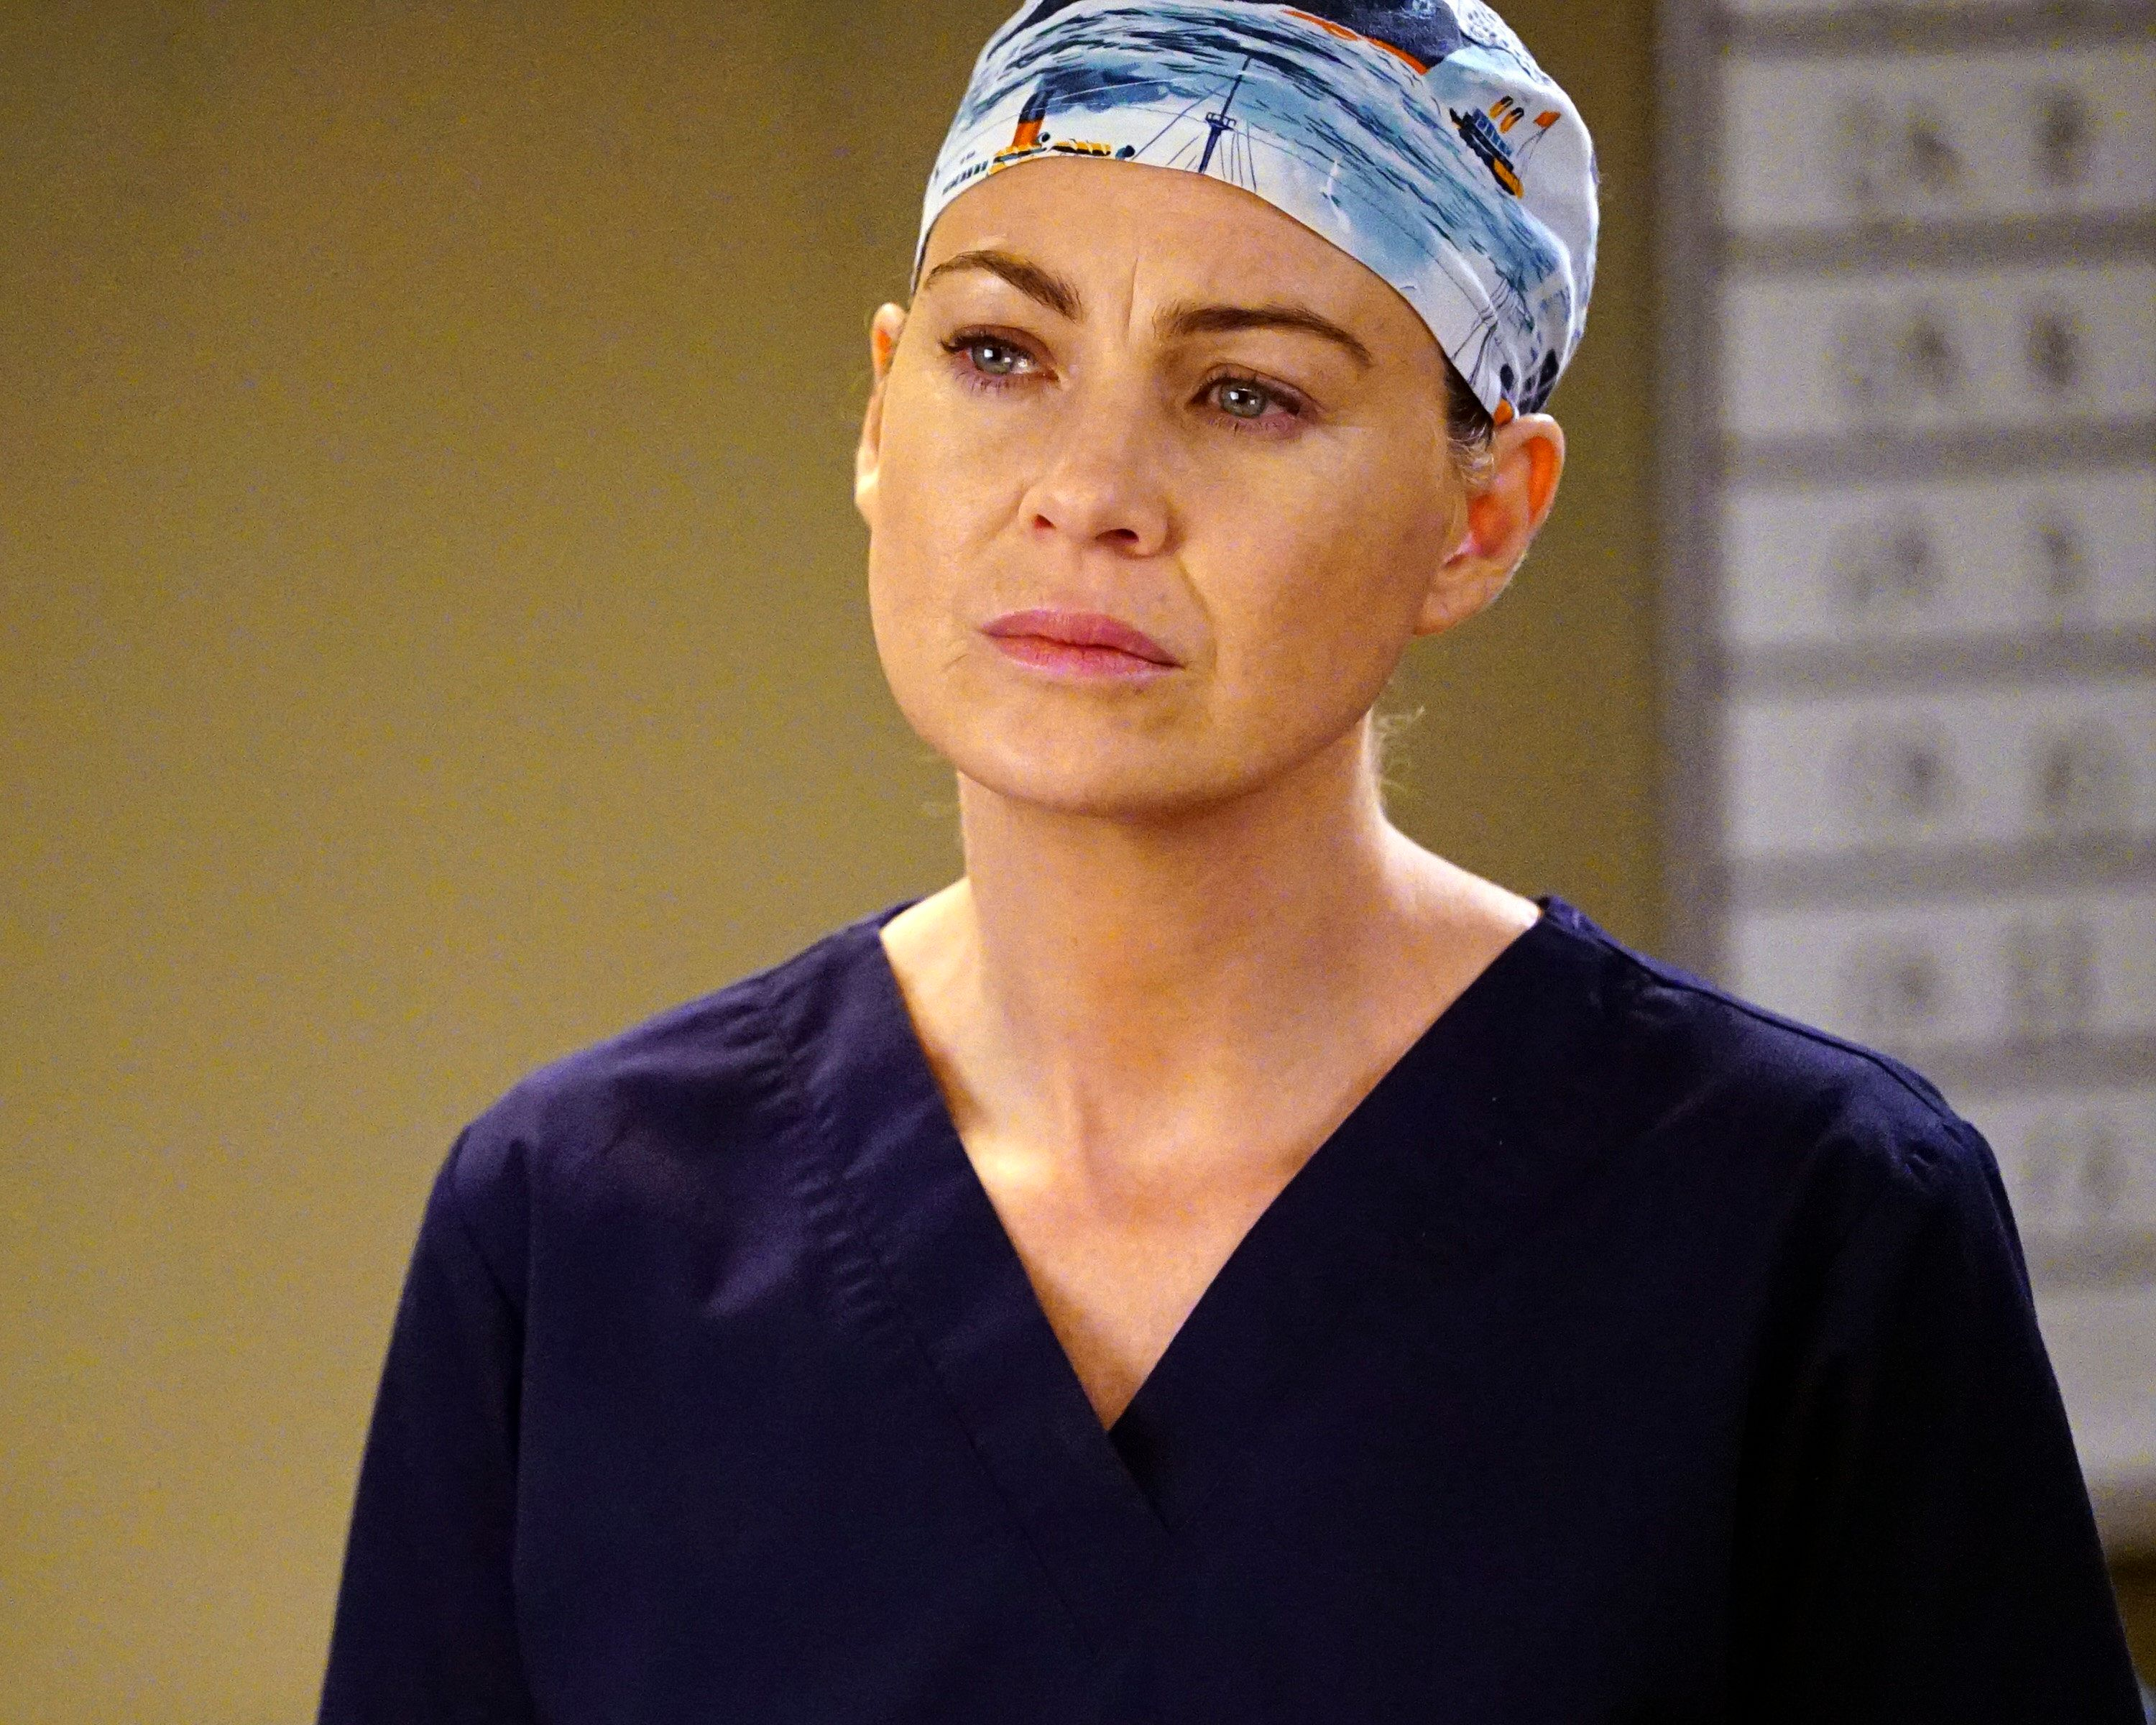 GREY'S ANATOMY - 'Trigger Happy' - The doctors work frantically to save a young boy who was accidentally shot. Meanwhile, Arizona is upset when Callie tries to make an important decision about Sophia's future without consulting her, on 'Grey's Anatomy,' THURSDAY, APRIL 21 (8:00-9:00 p.m. EDT), on the ABC Television Network. (Photo by Richard Cartwright/ABC via via Getty Images) ELLEN POMPEO